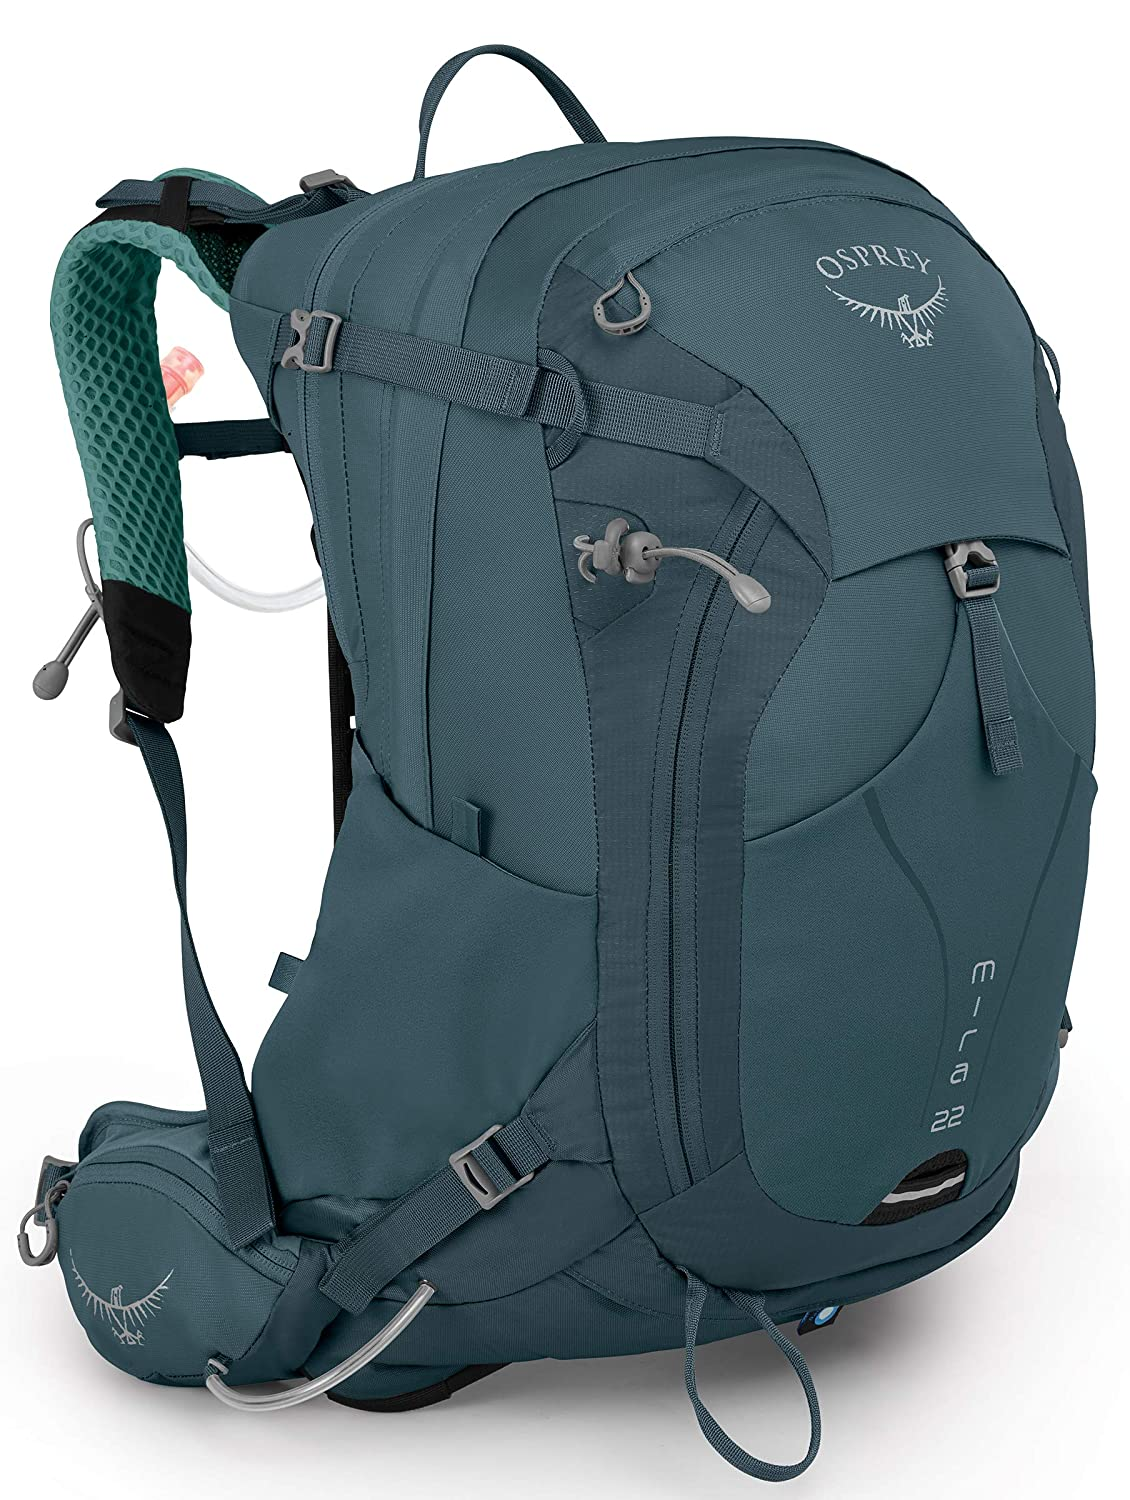 Osprey Packs Mira 22 Women s Hiking Hydration Backpack